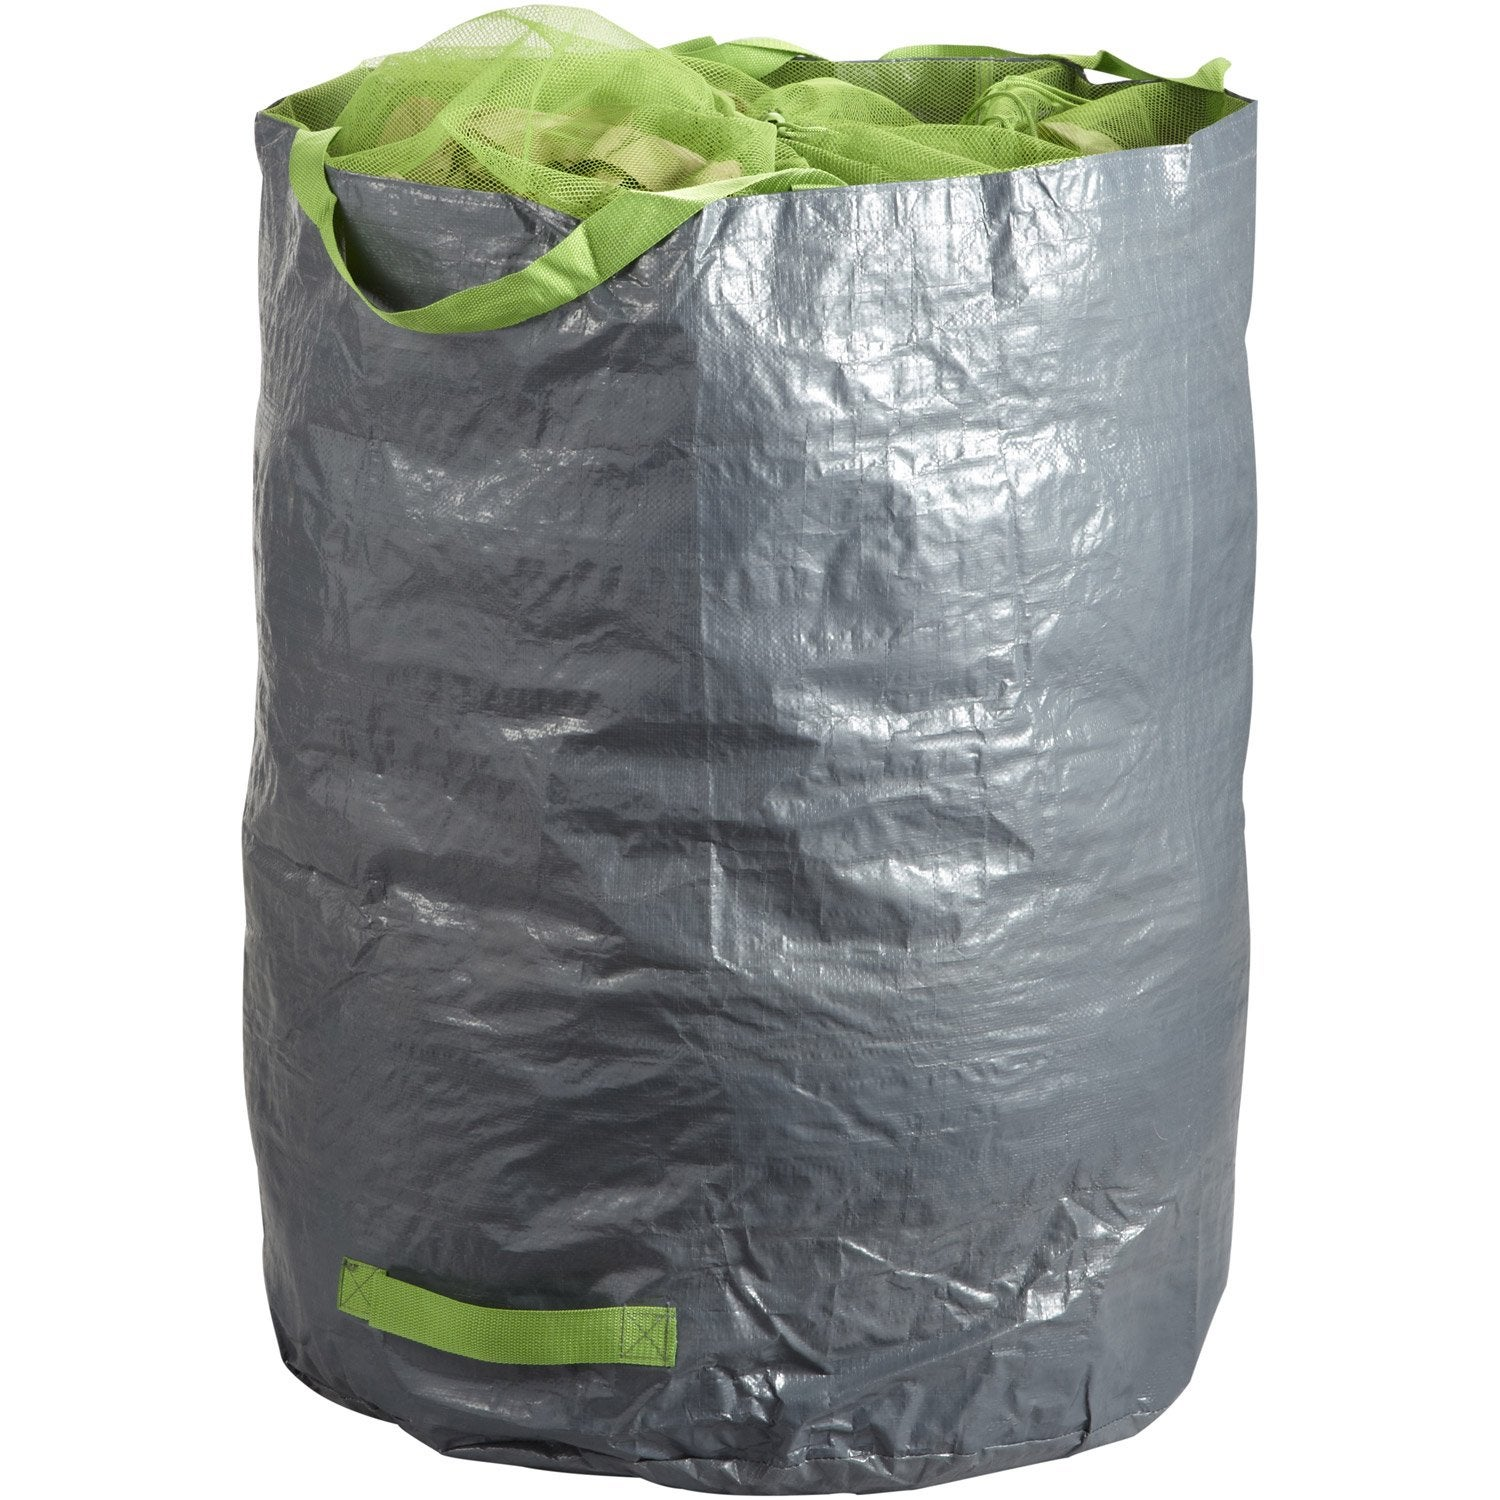 Sac v g taux gazon feuilles r utilisable geolia 270 l - Big bag terre vegetale leroy merlin ...